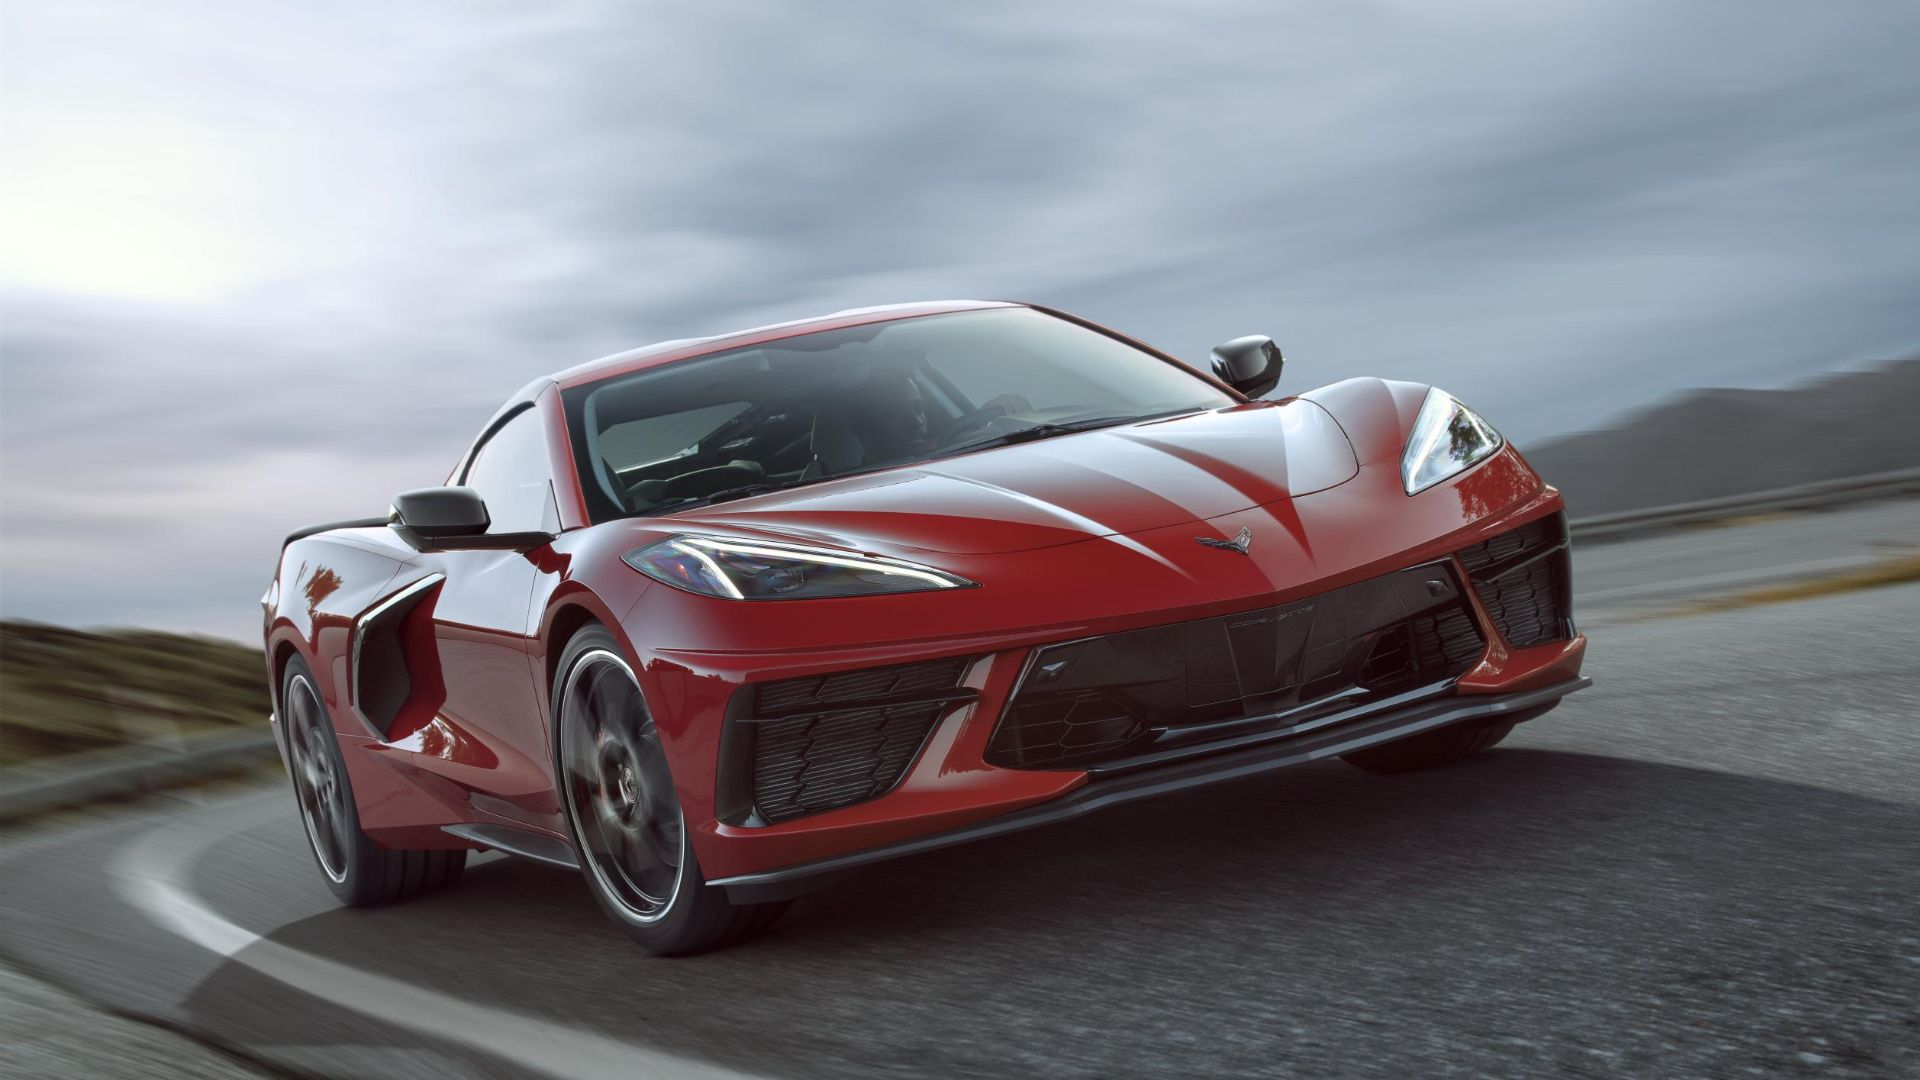 Chevrolet Corvette C8 loses GM money